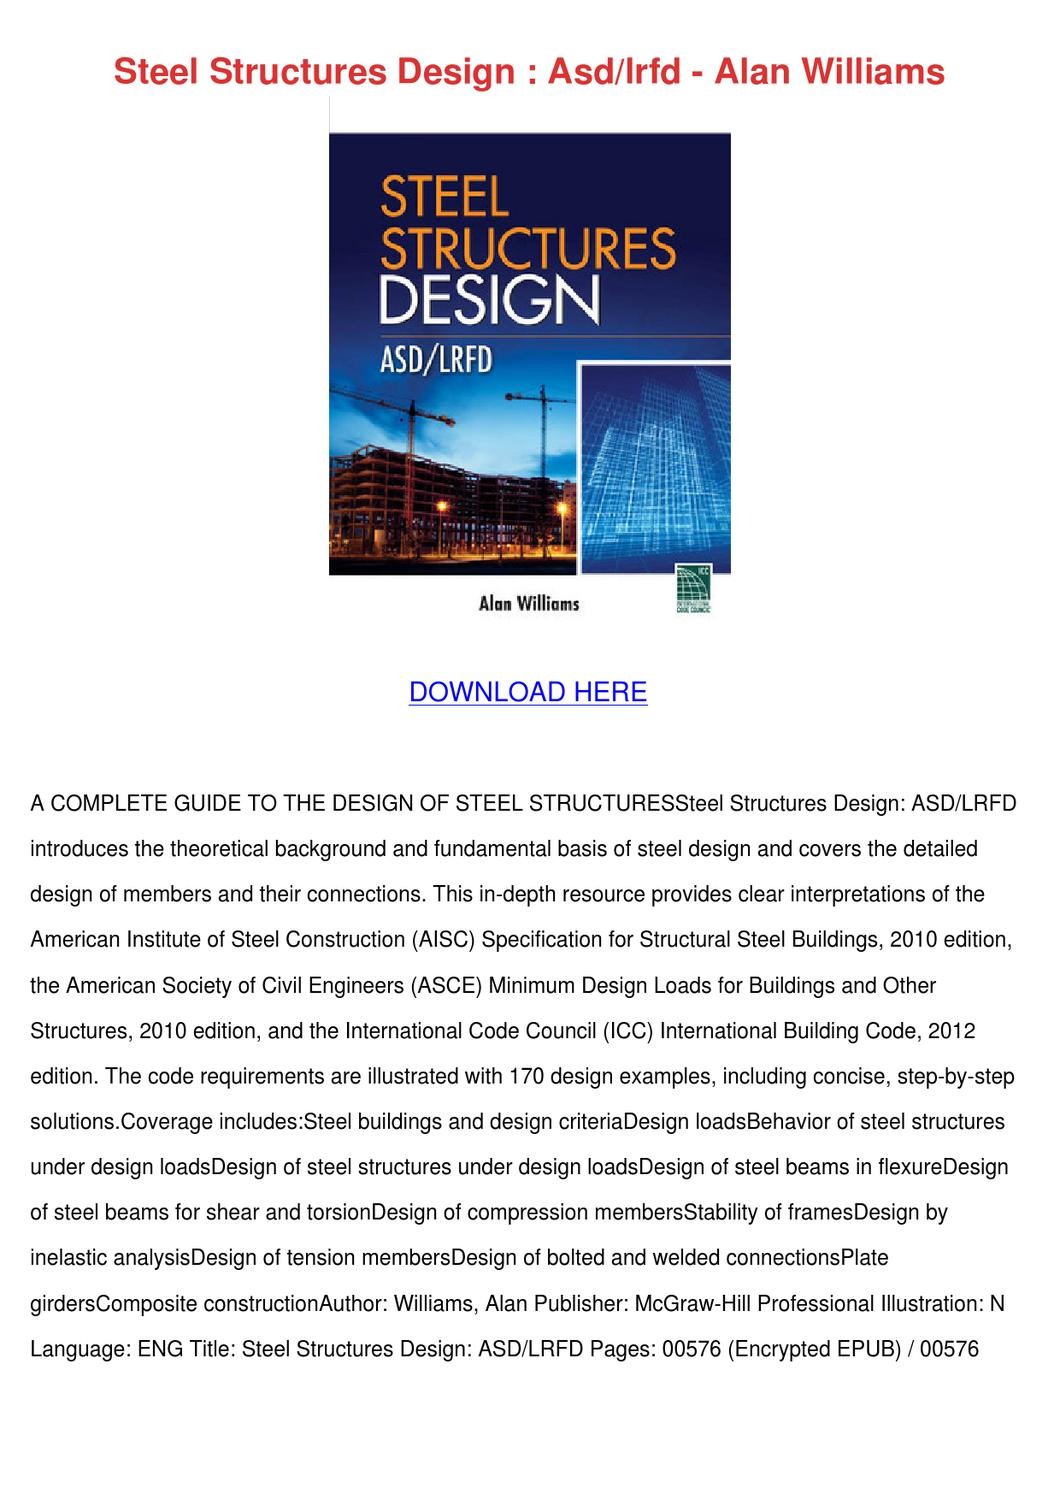 Steel Structures Design Asdlrfd Alan Williams by Cecil Goral - issuu